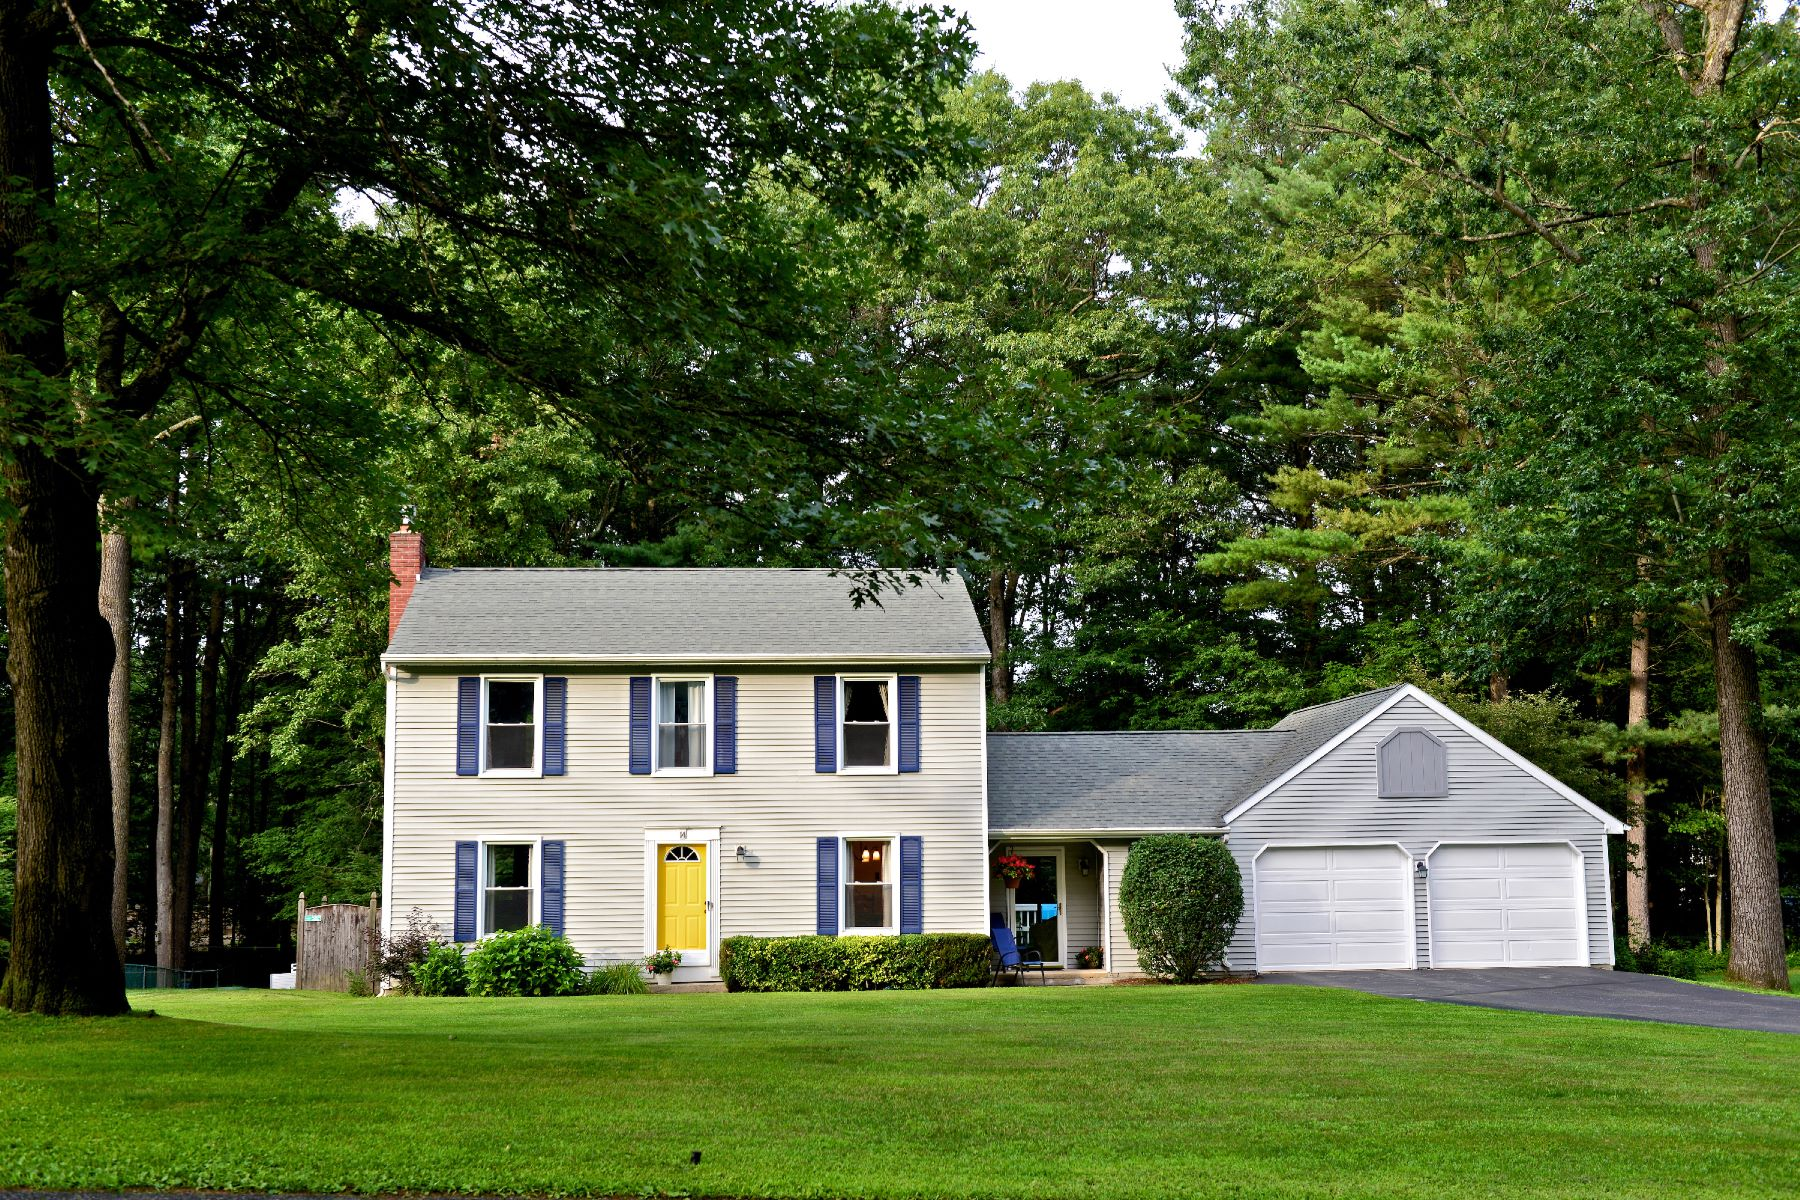 Single Family Homes for Sale at 14 Van Brummel La Ballston Spa, New York 12020 United States